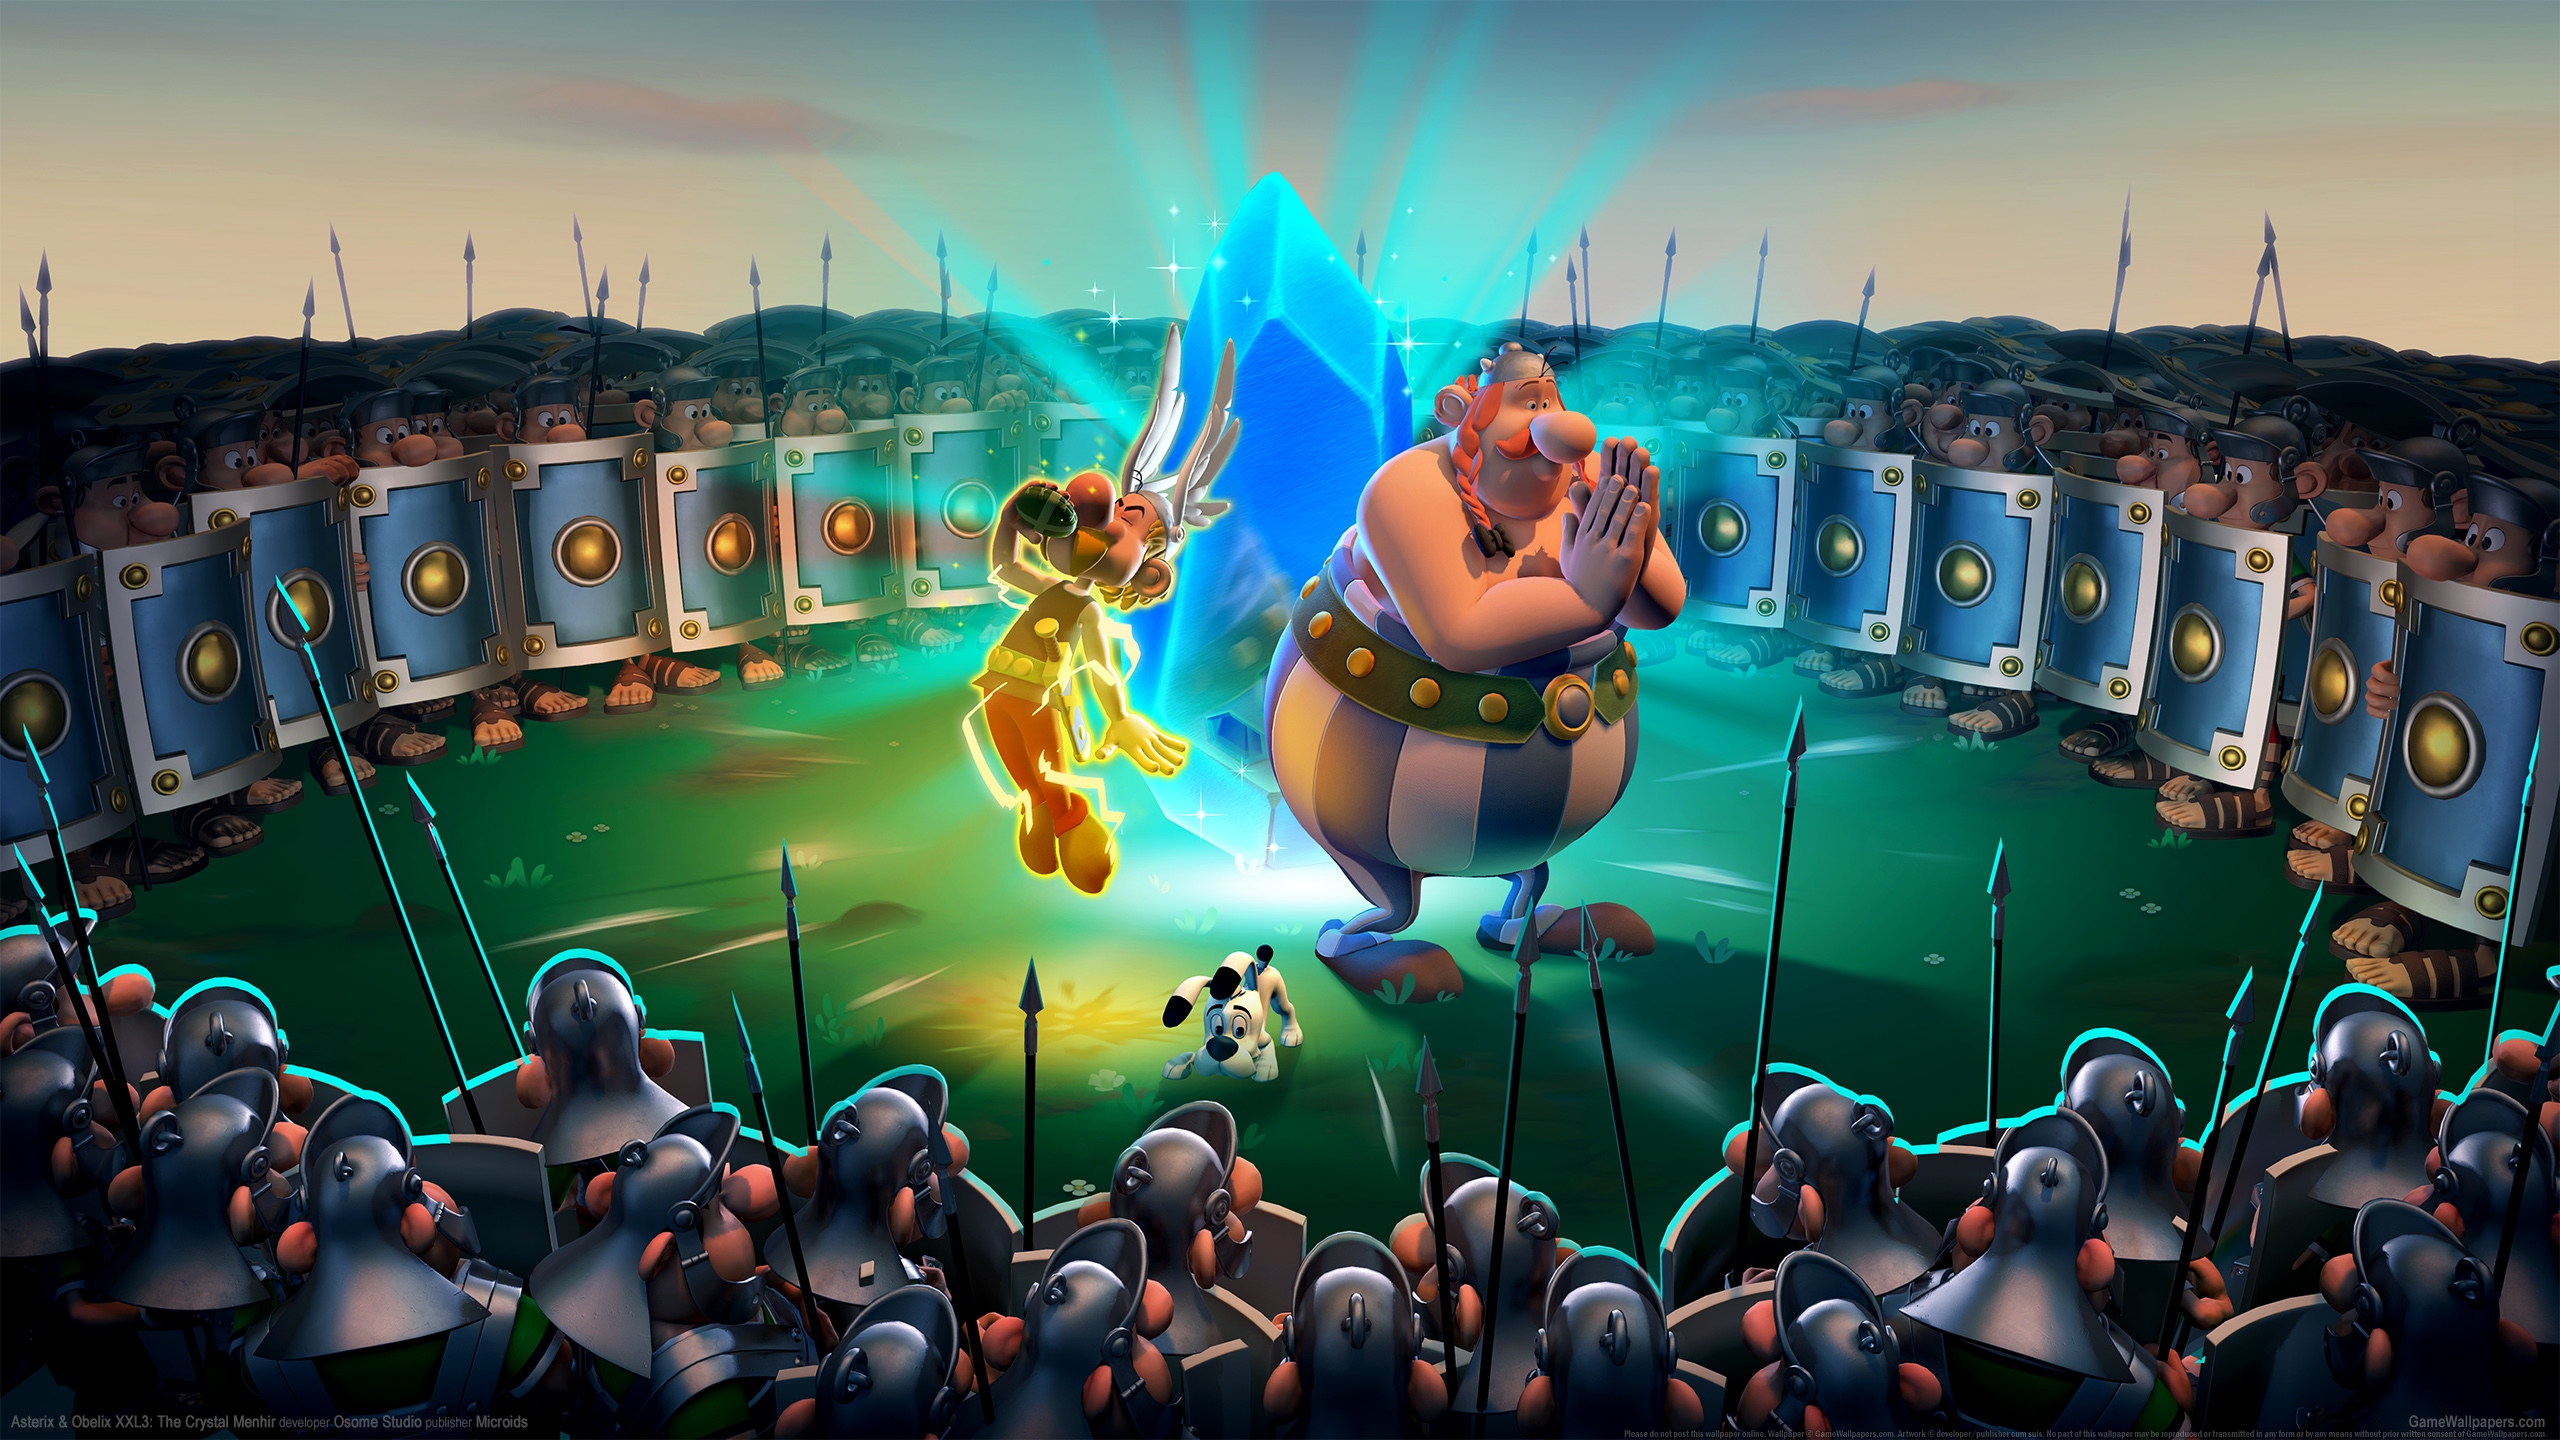 Asterix & Obelix XXL3: The Crystal Menhir 2560x1440 wallpaper or background 01